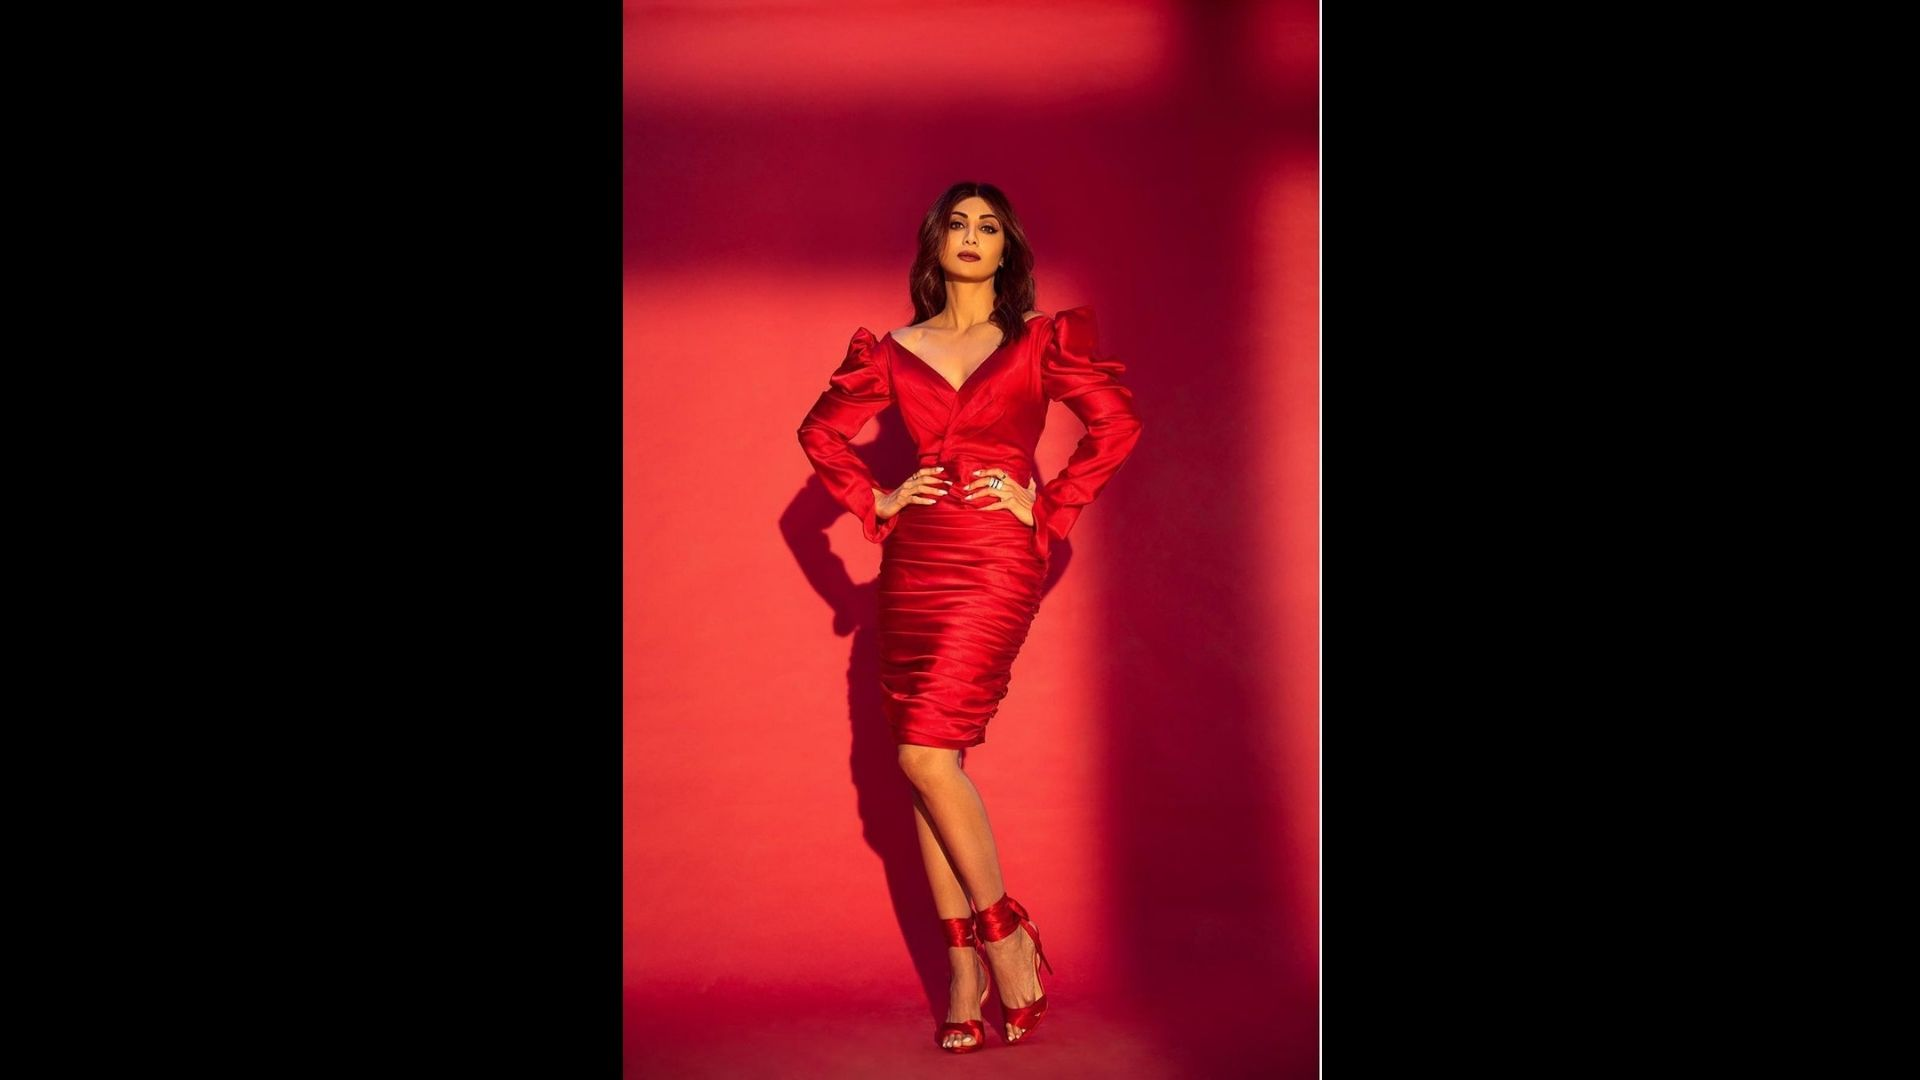 Watch Shilpa Shetty Get All Goofy And Groovy 'In The Getto' As She Dazzles In Her Bodycon Red Dress